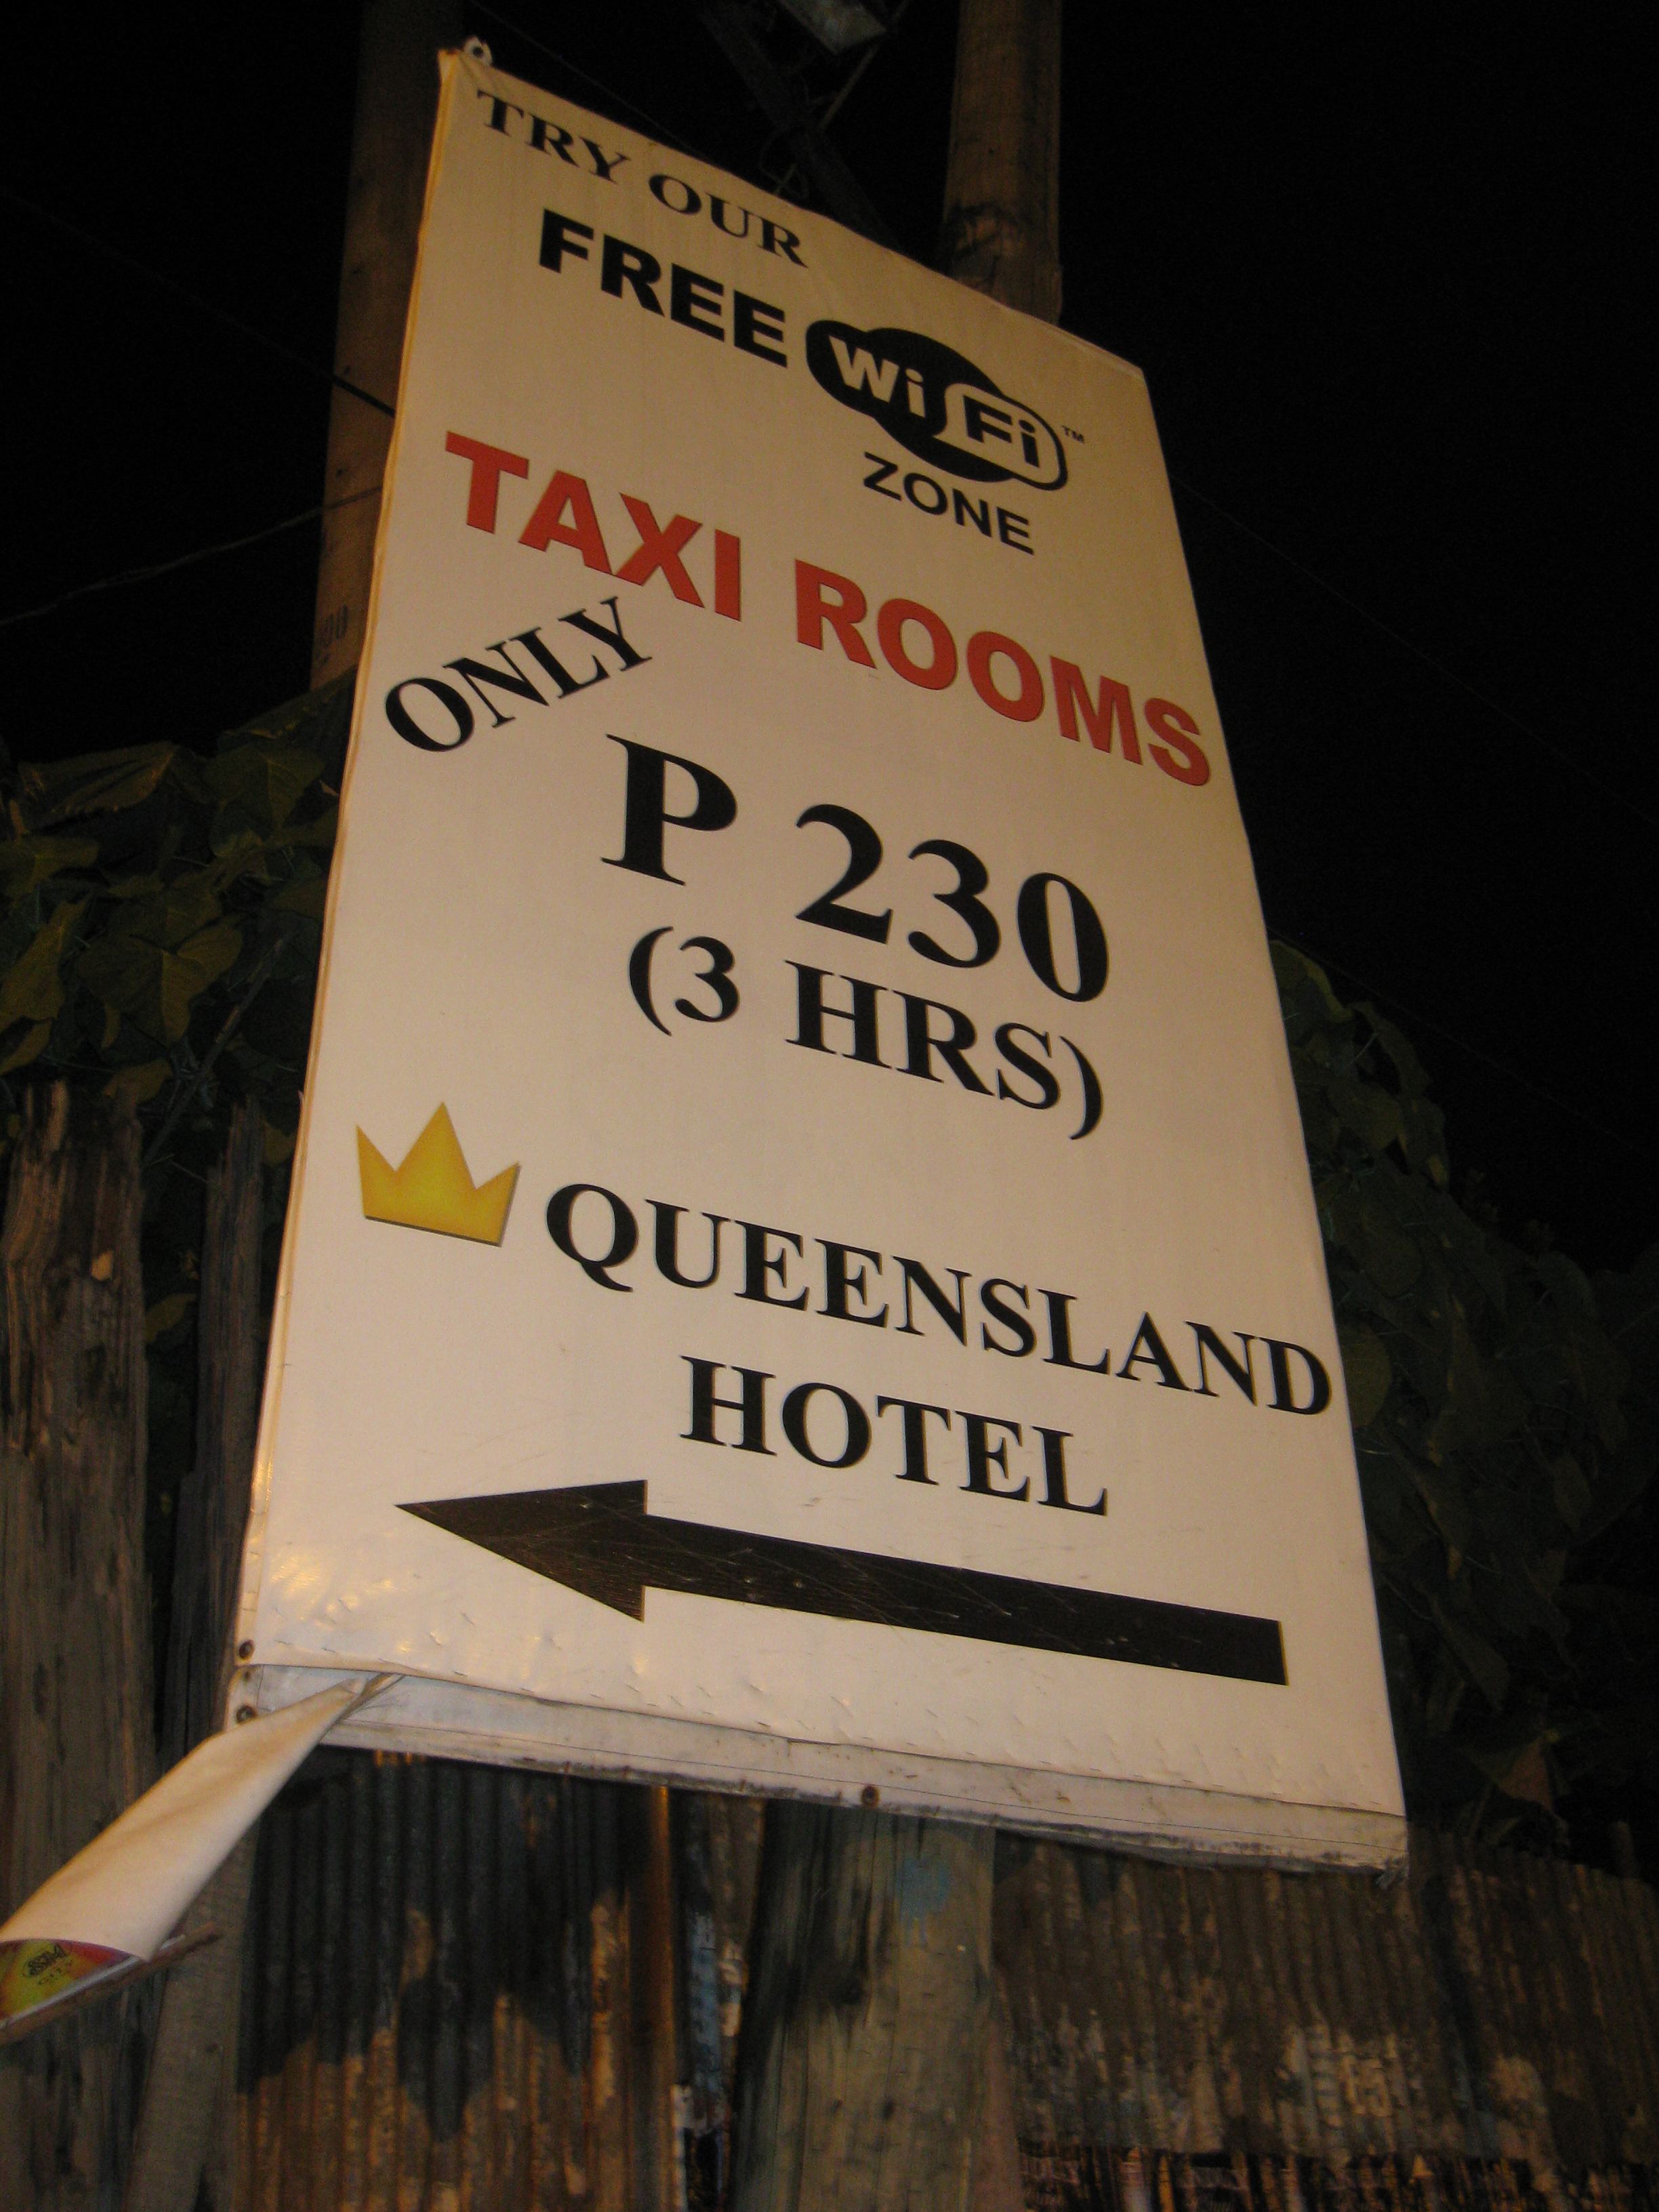 outcalls singles looking for sex Queensland